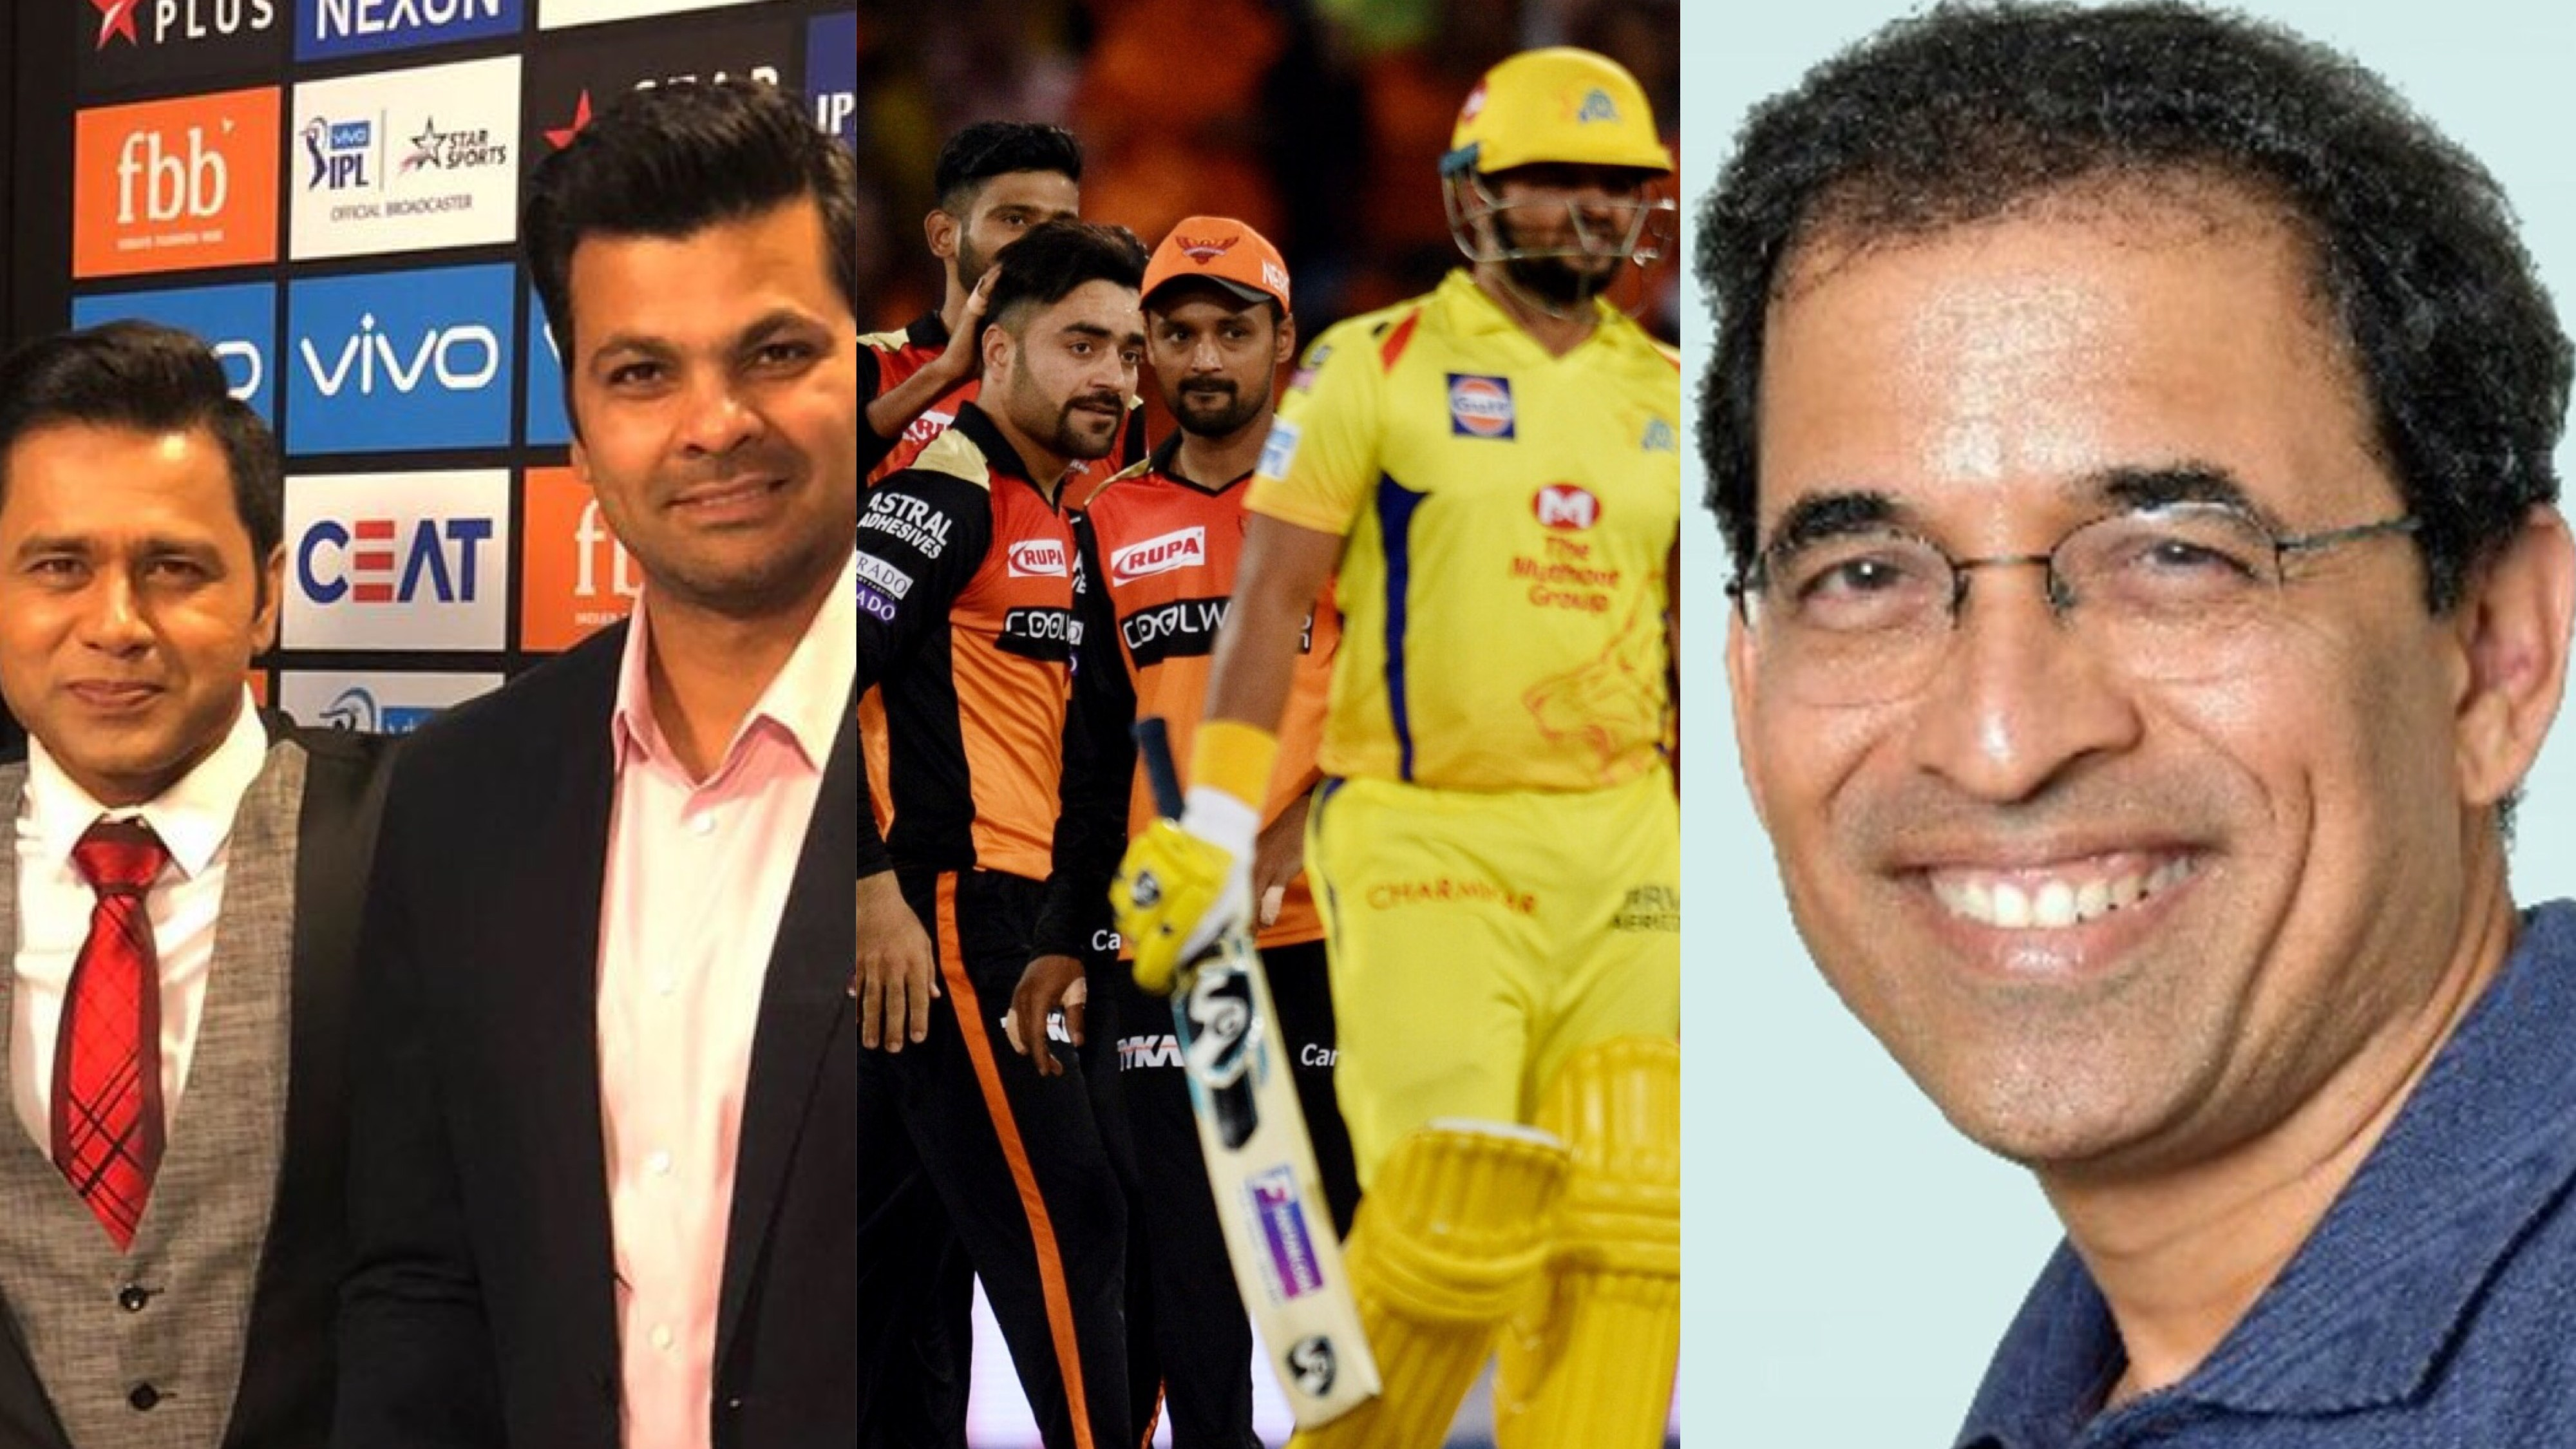 IPL 2019: SRH v CSK - Cricket fraternity hails SRH's resounding victory over table-toppers CSK